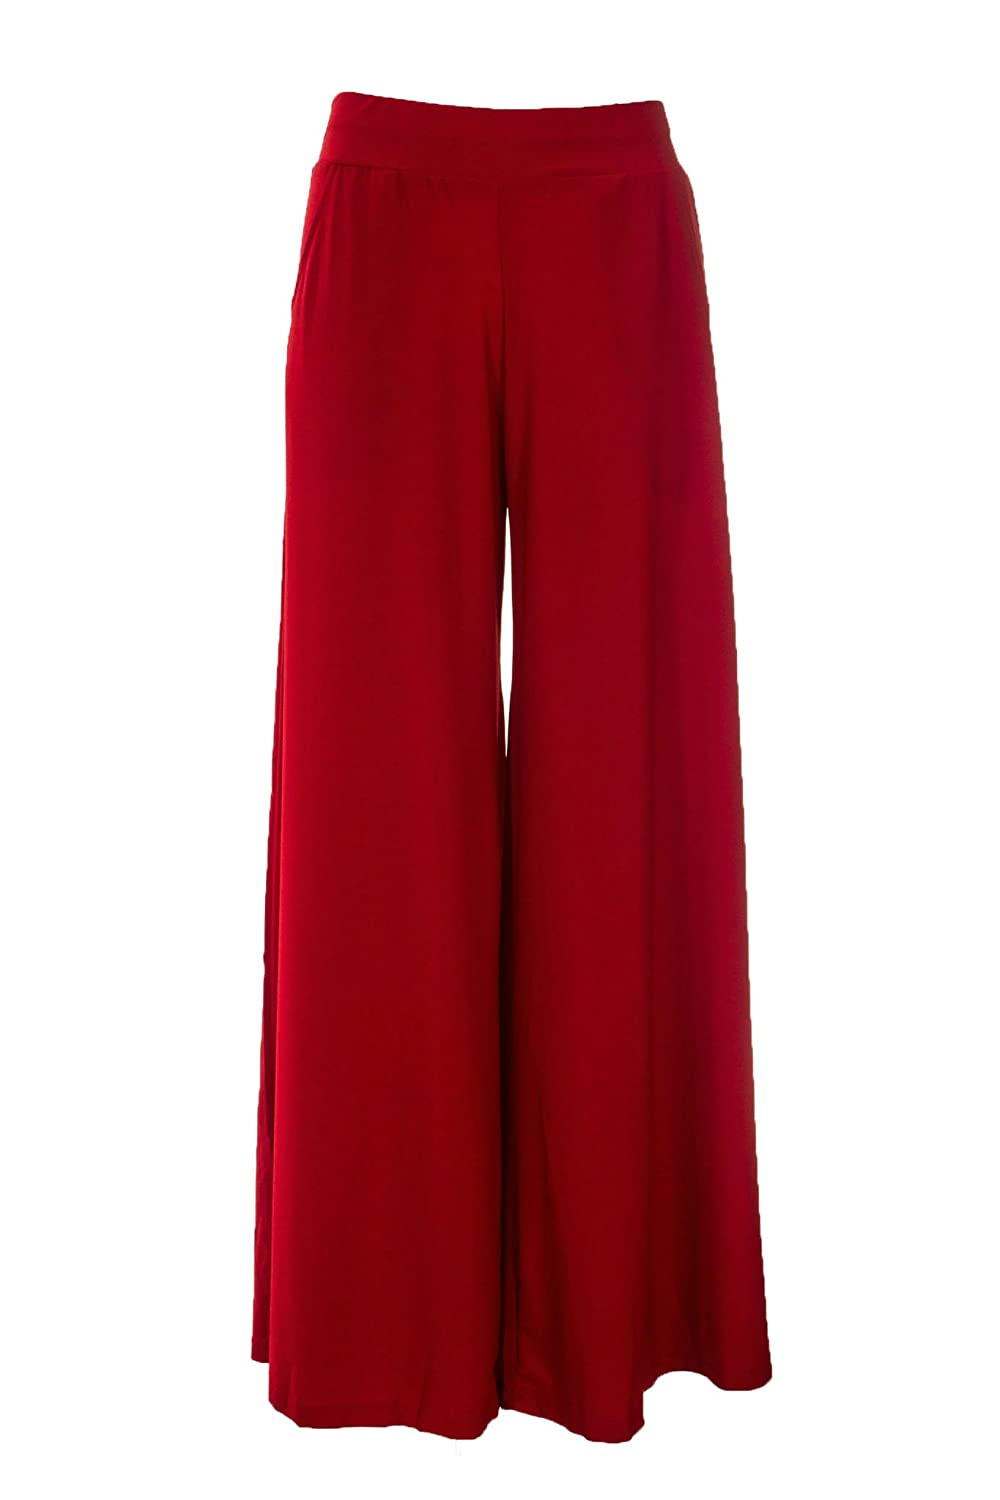 Deals on Indian Ethnic Rayon Designer Plain Casual Wear Plazo Pant For Women's